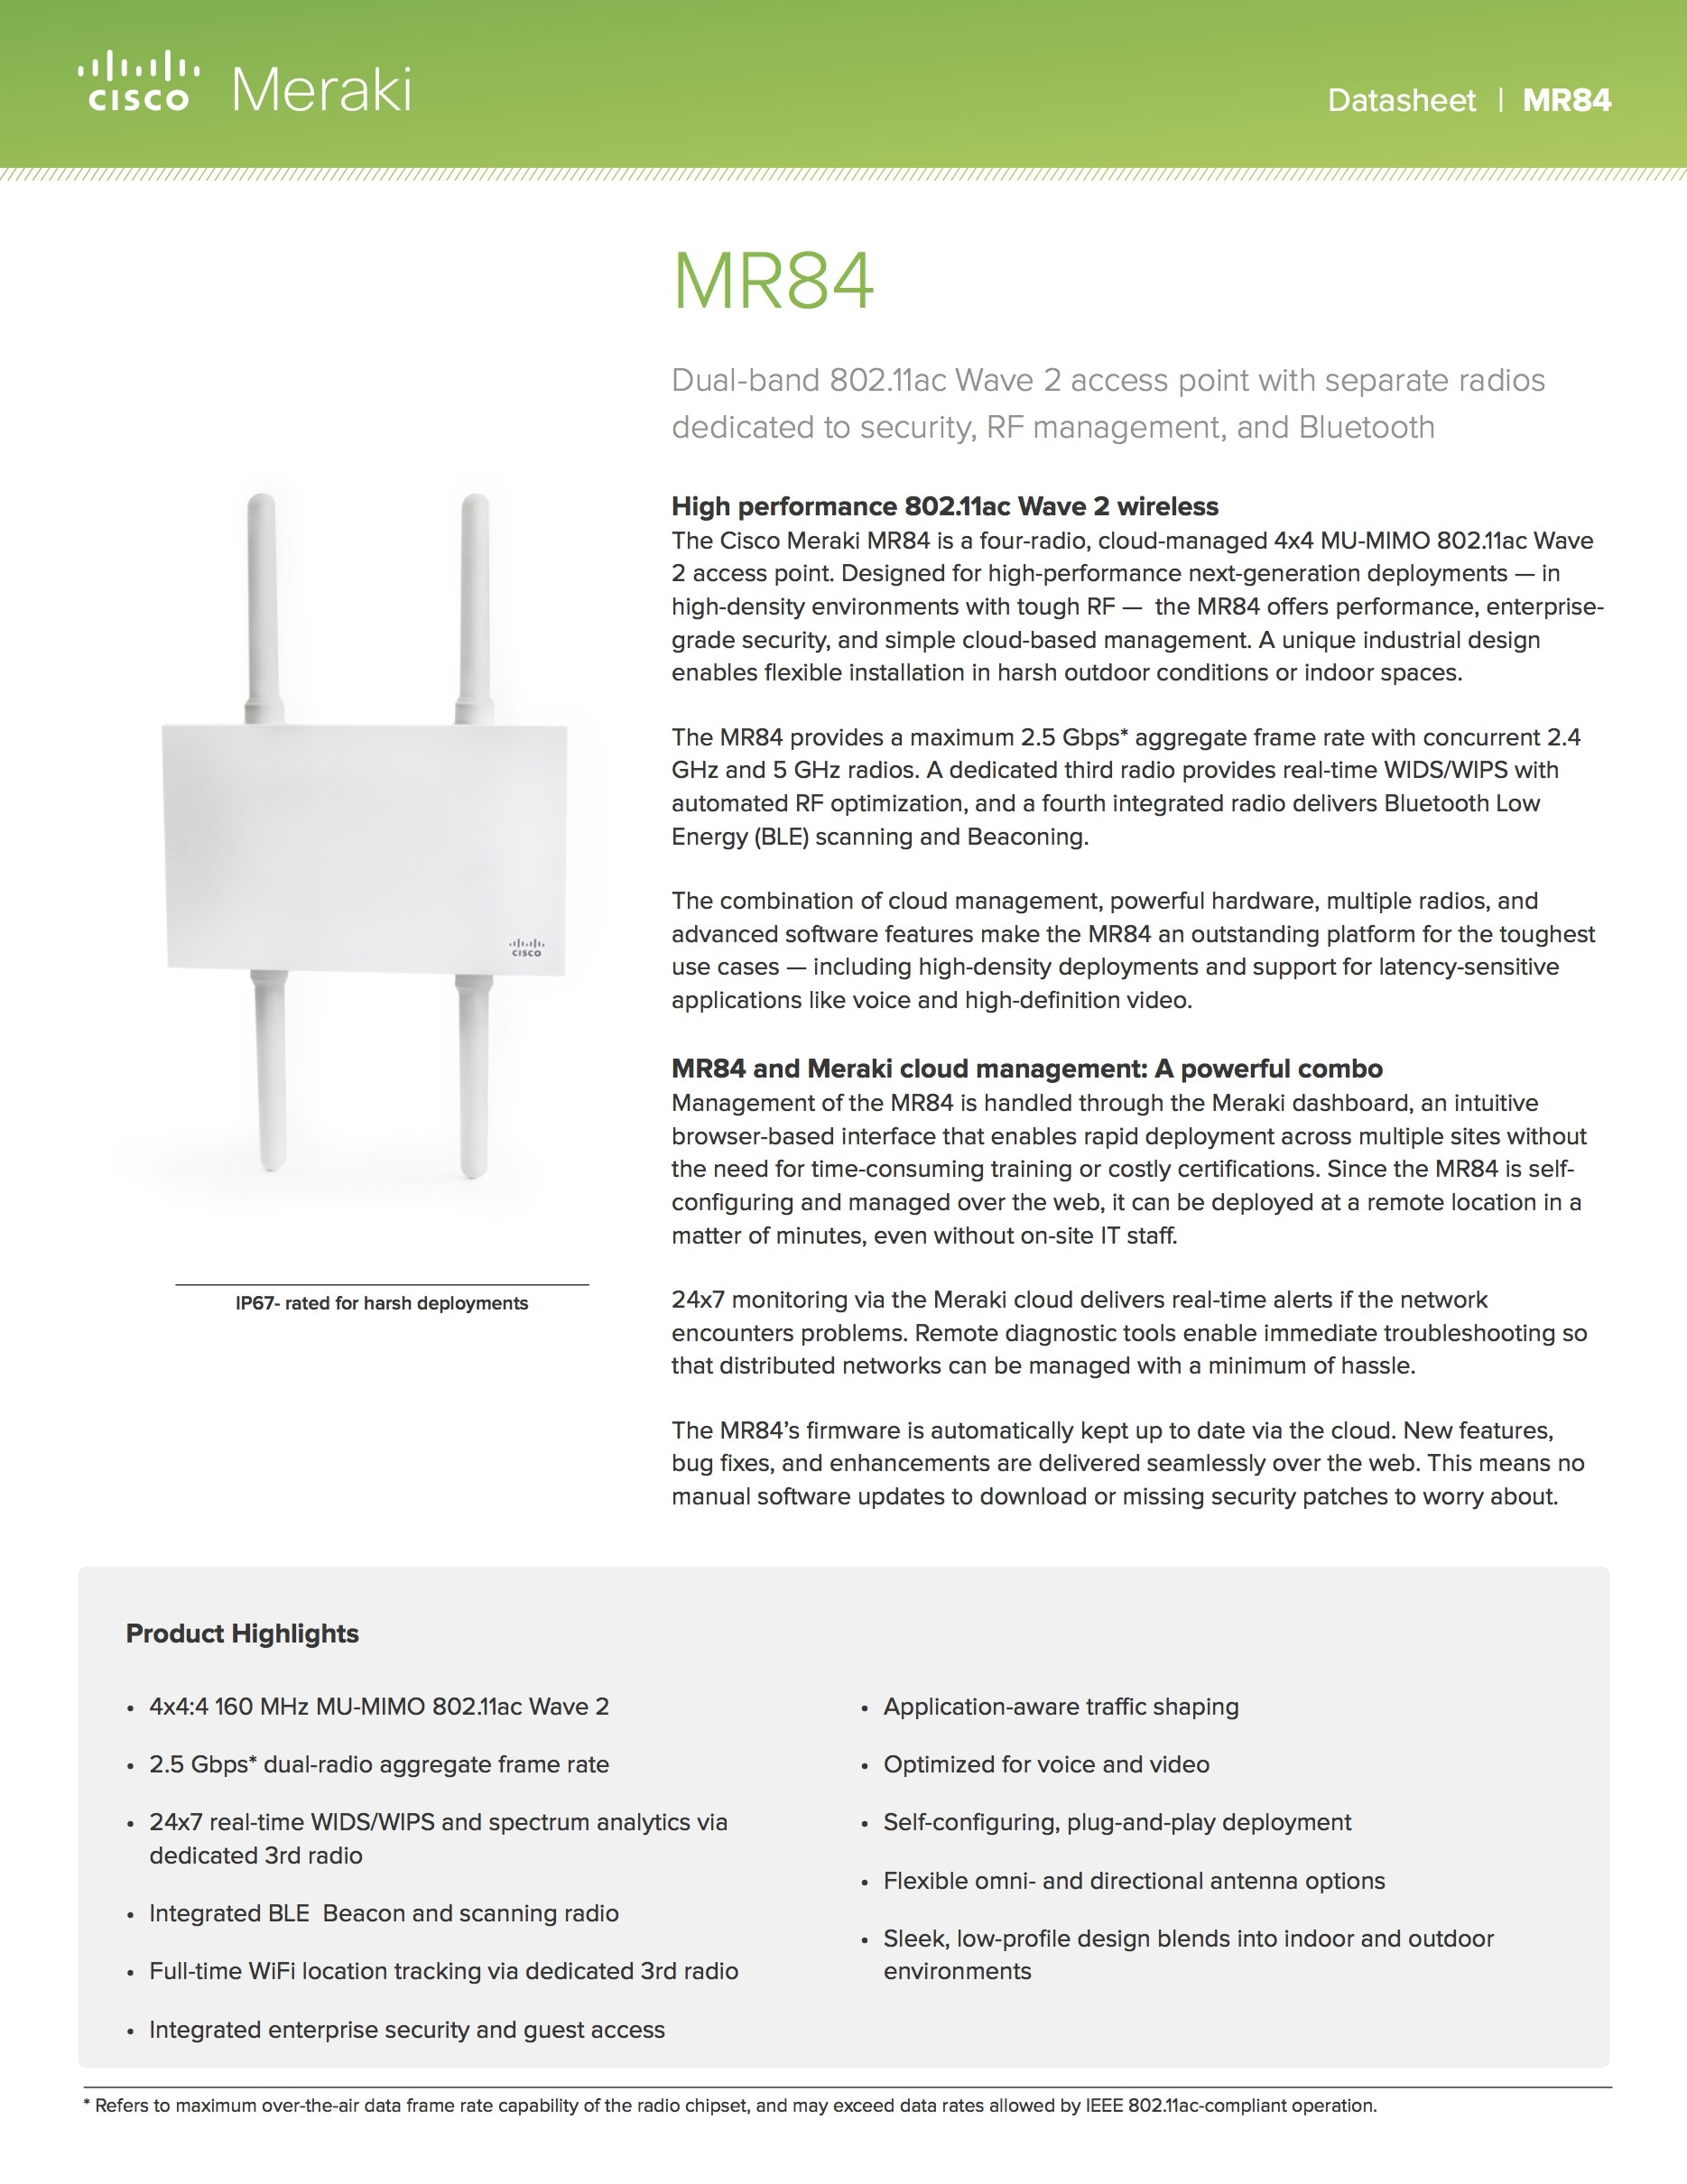 Cisco Meraki Library Datasheets Whitepapers Product Images Pic1 Network Diagram Lan Fault Tolerance System Mr74 Datasheet Mr84